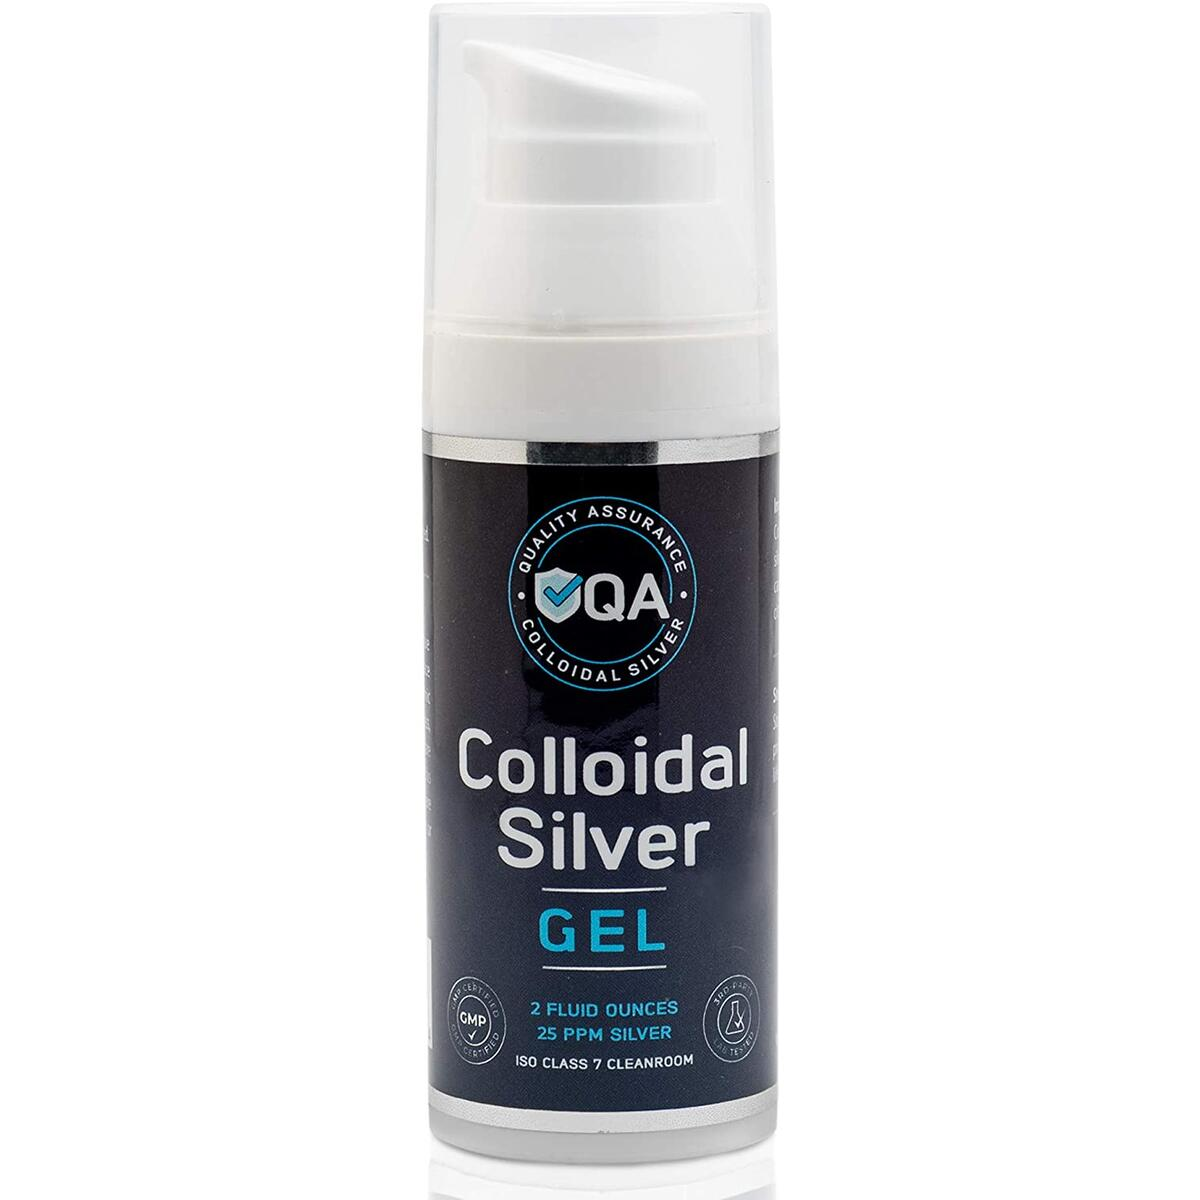 Colloidal Silver Gel - Topical Silver Ointment for Hands, Face & Skin